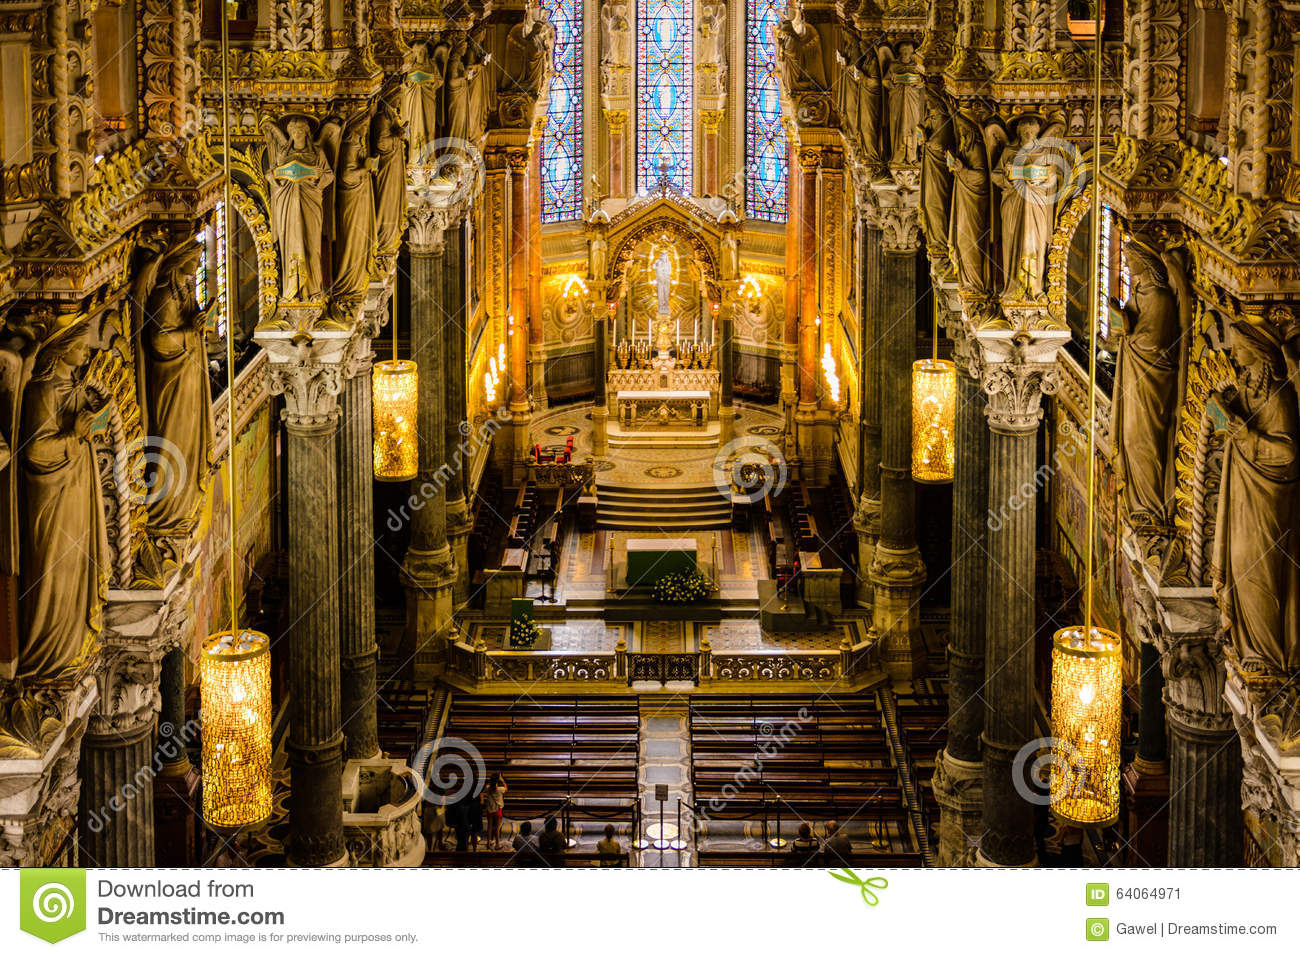 Architecture in fourviere basilica lyon france stock for Z architecture lyon